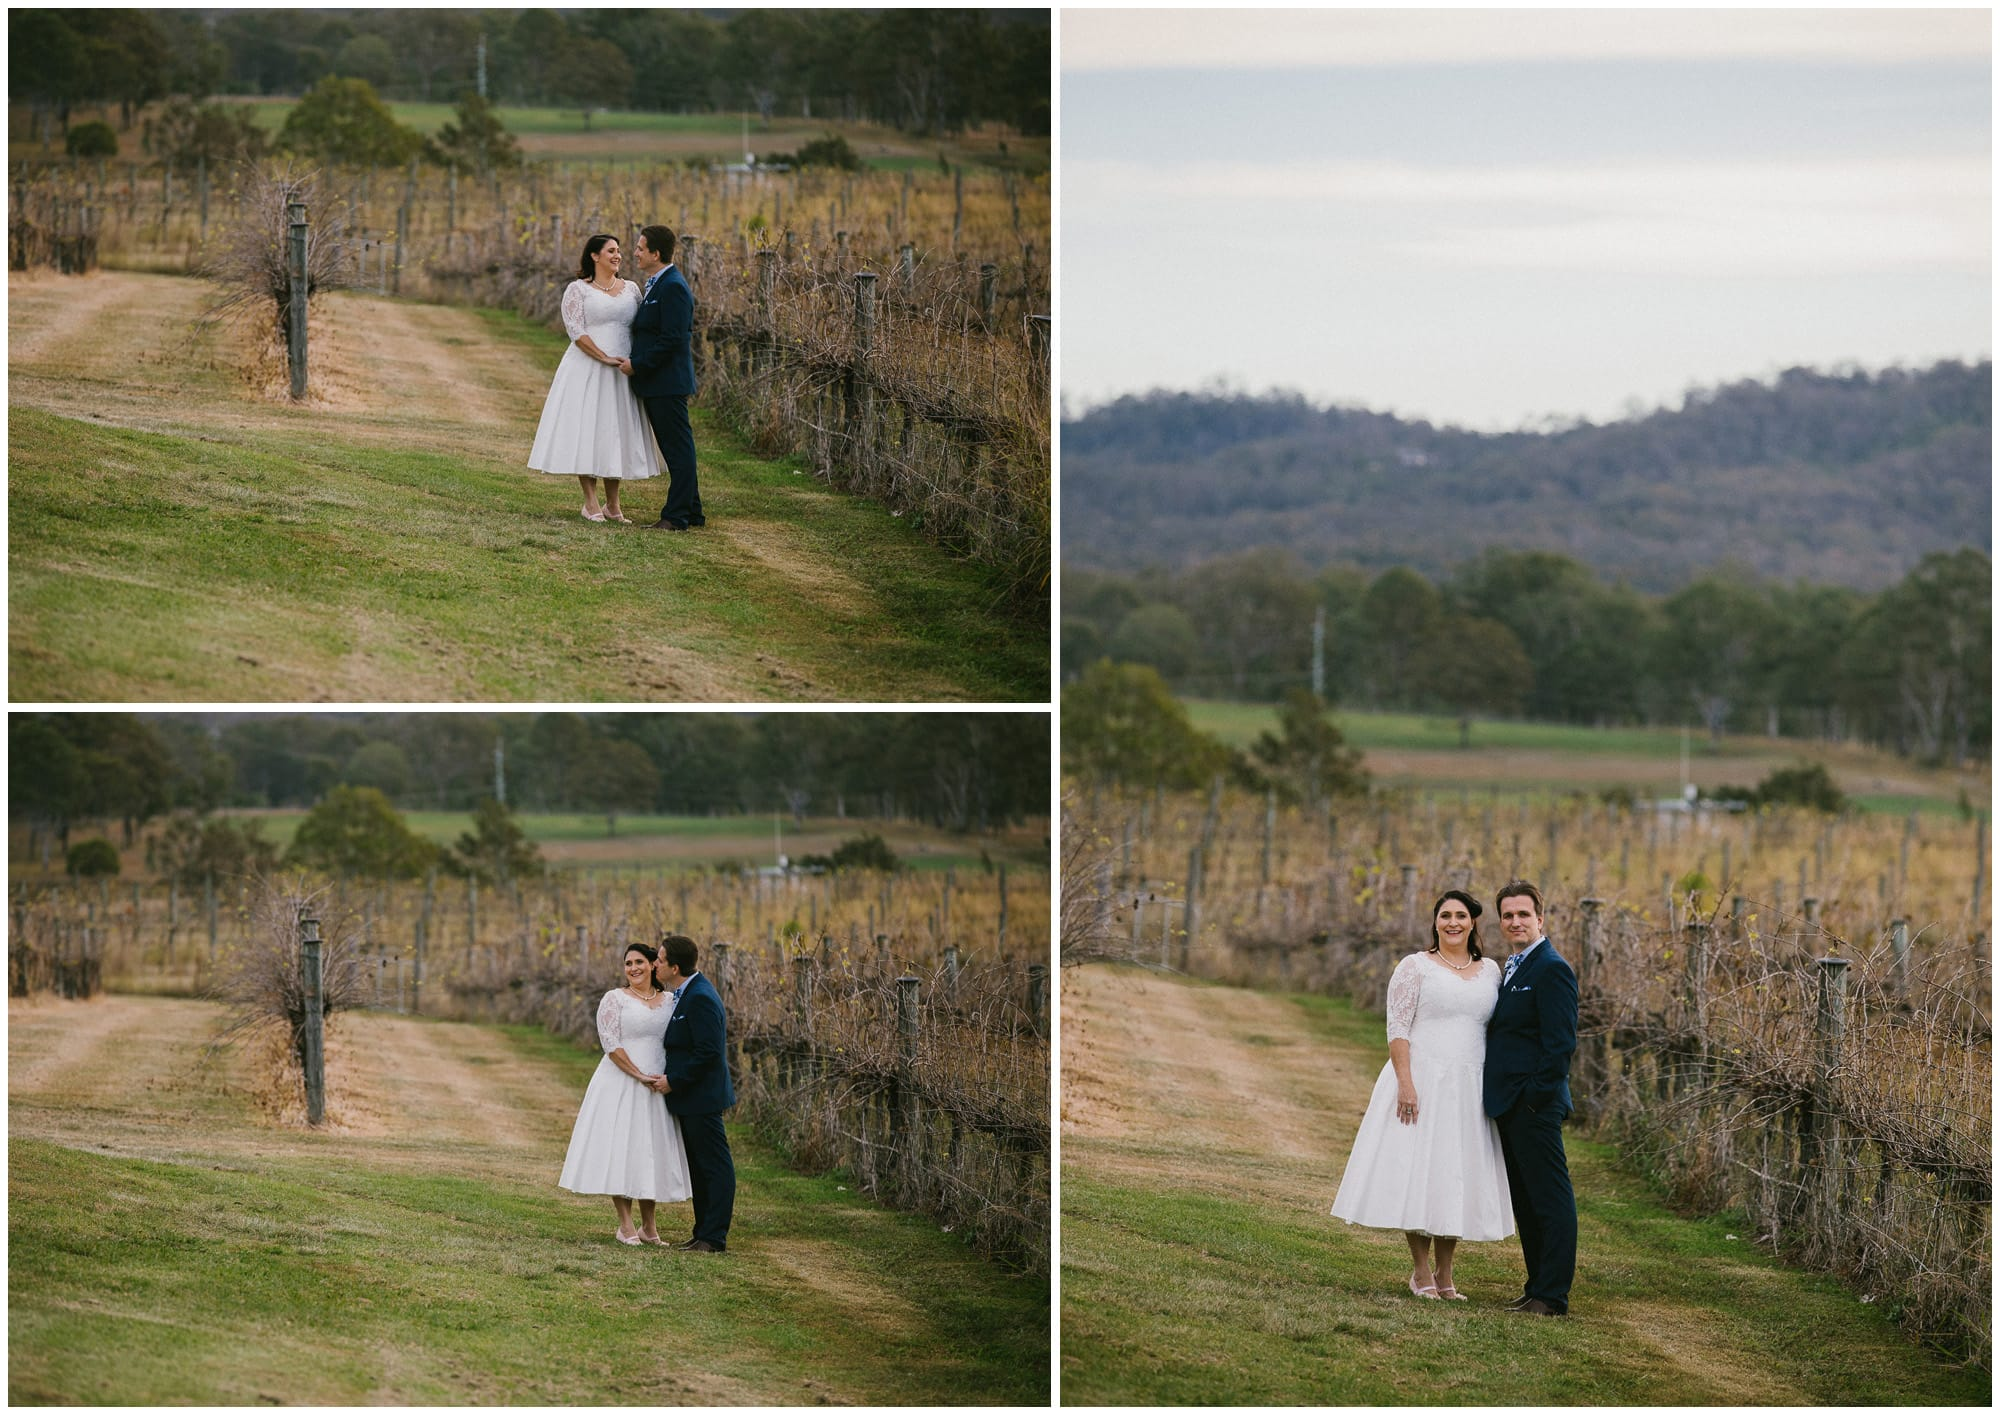 Albert River Winery wedding photography